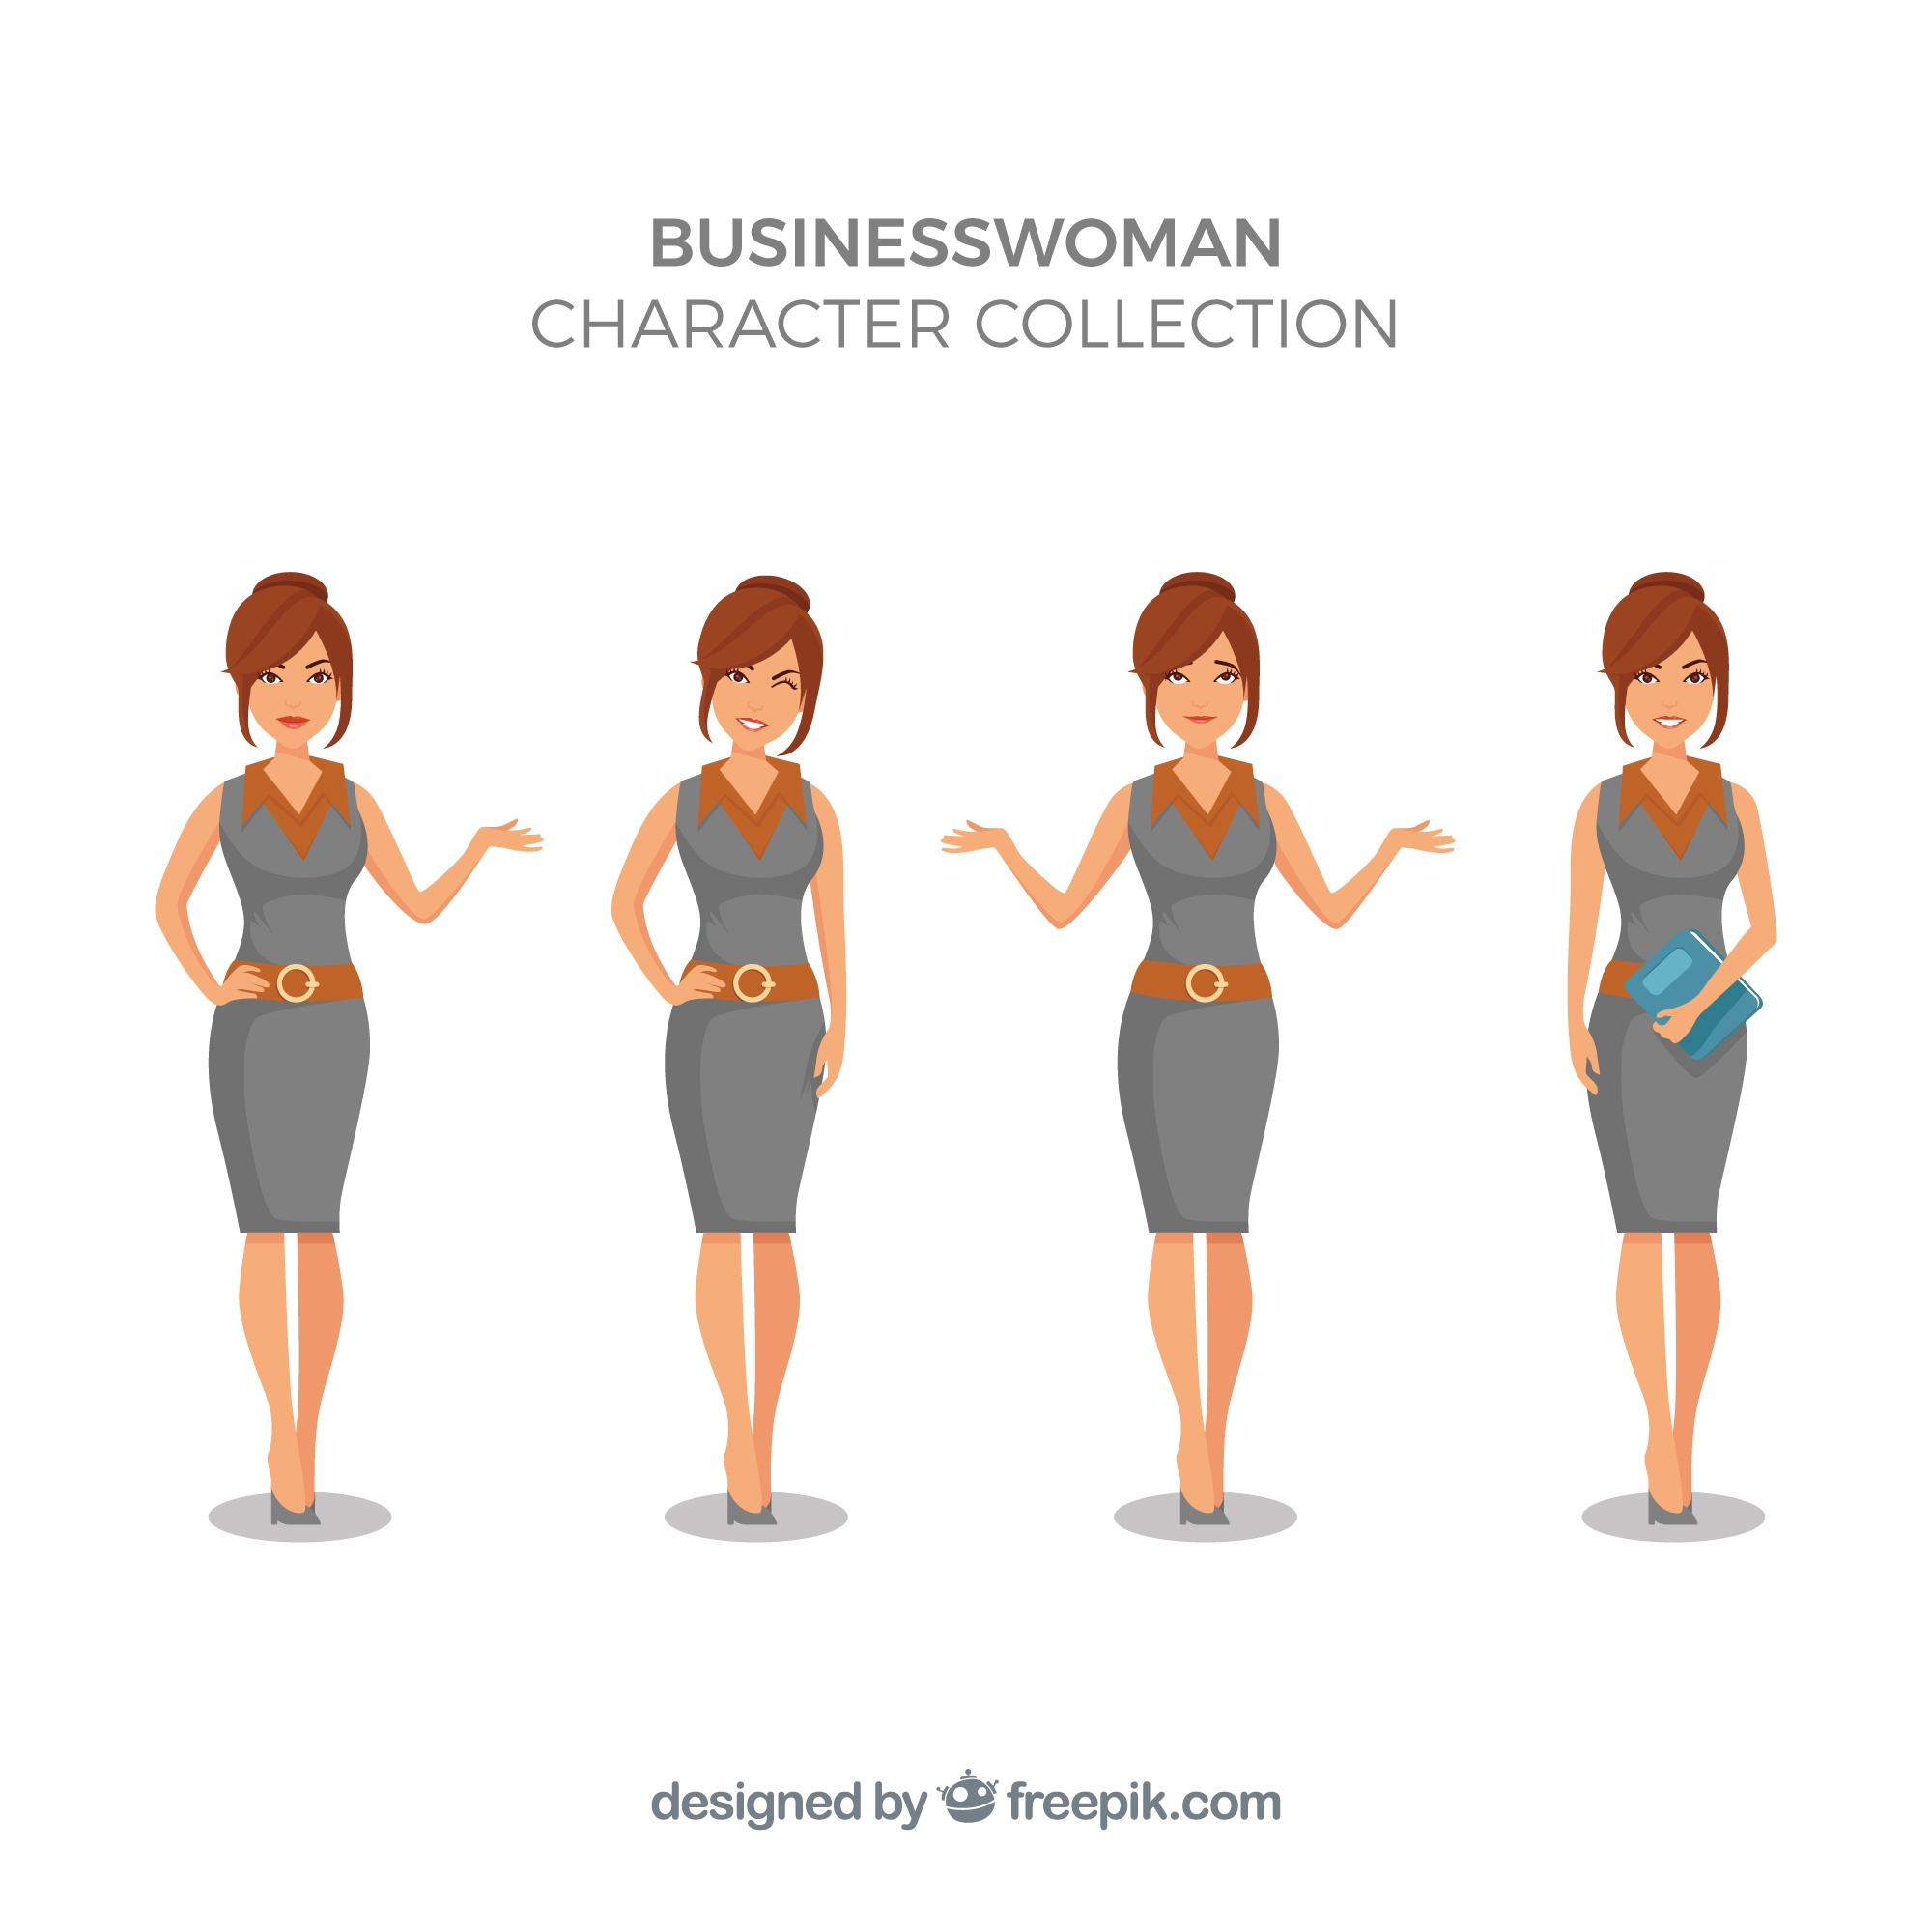 Expressive businesswoman character collection